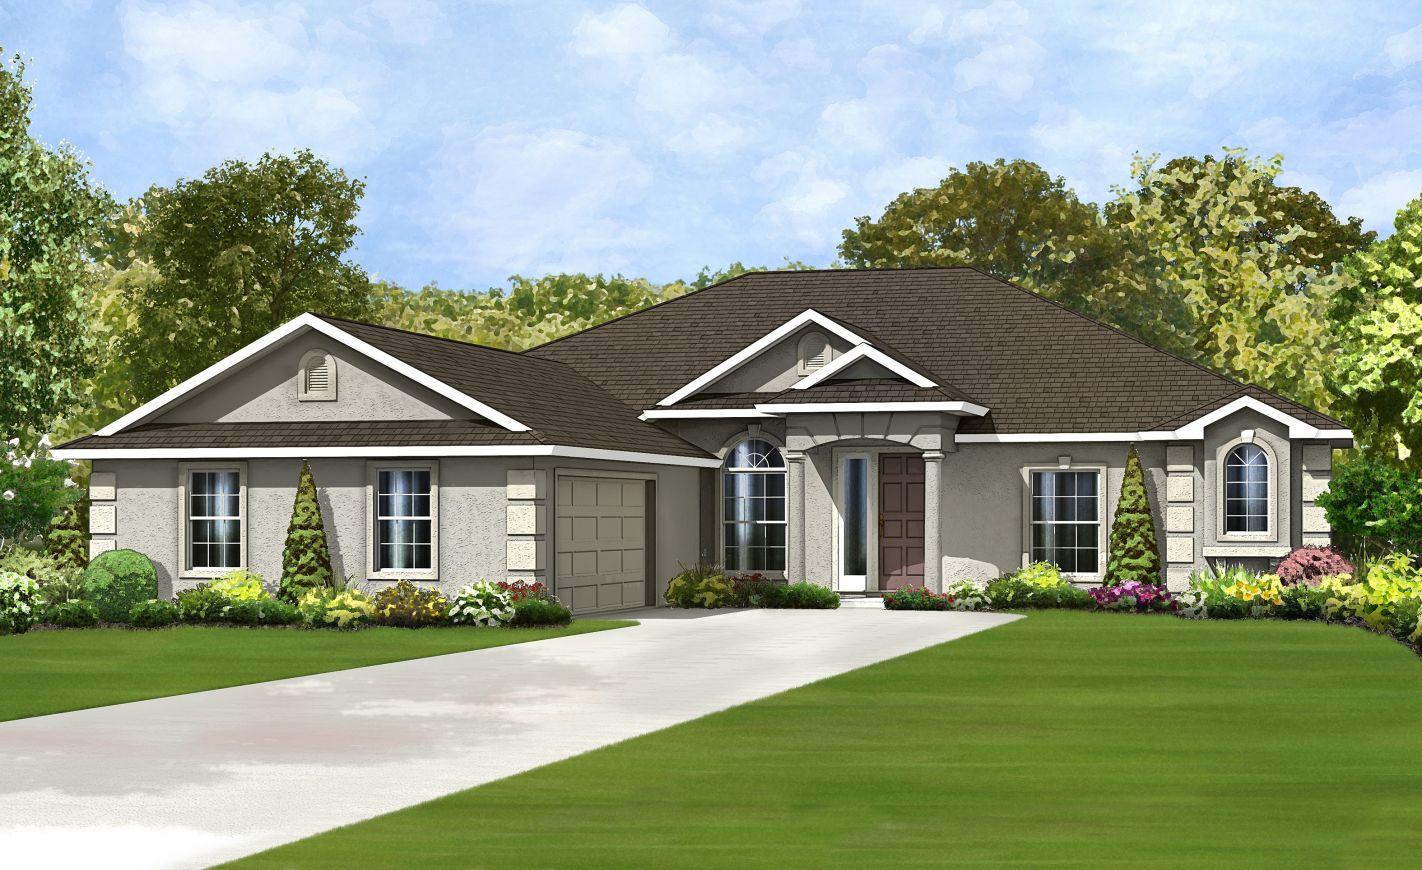 New Homes In Breakaway Trails Ormond Beach Ici Homes